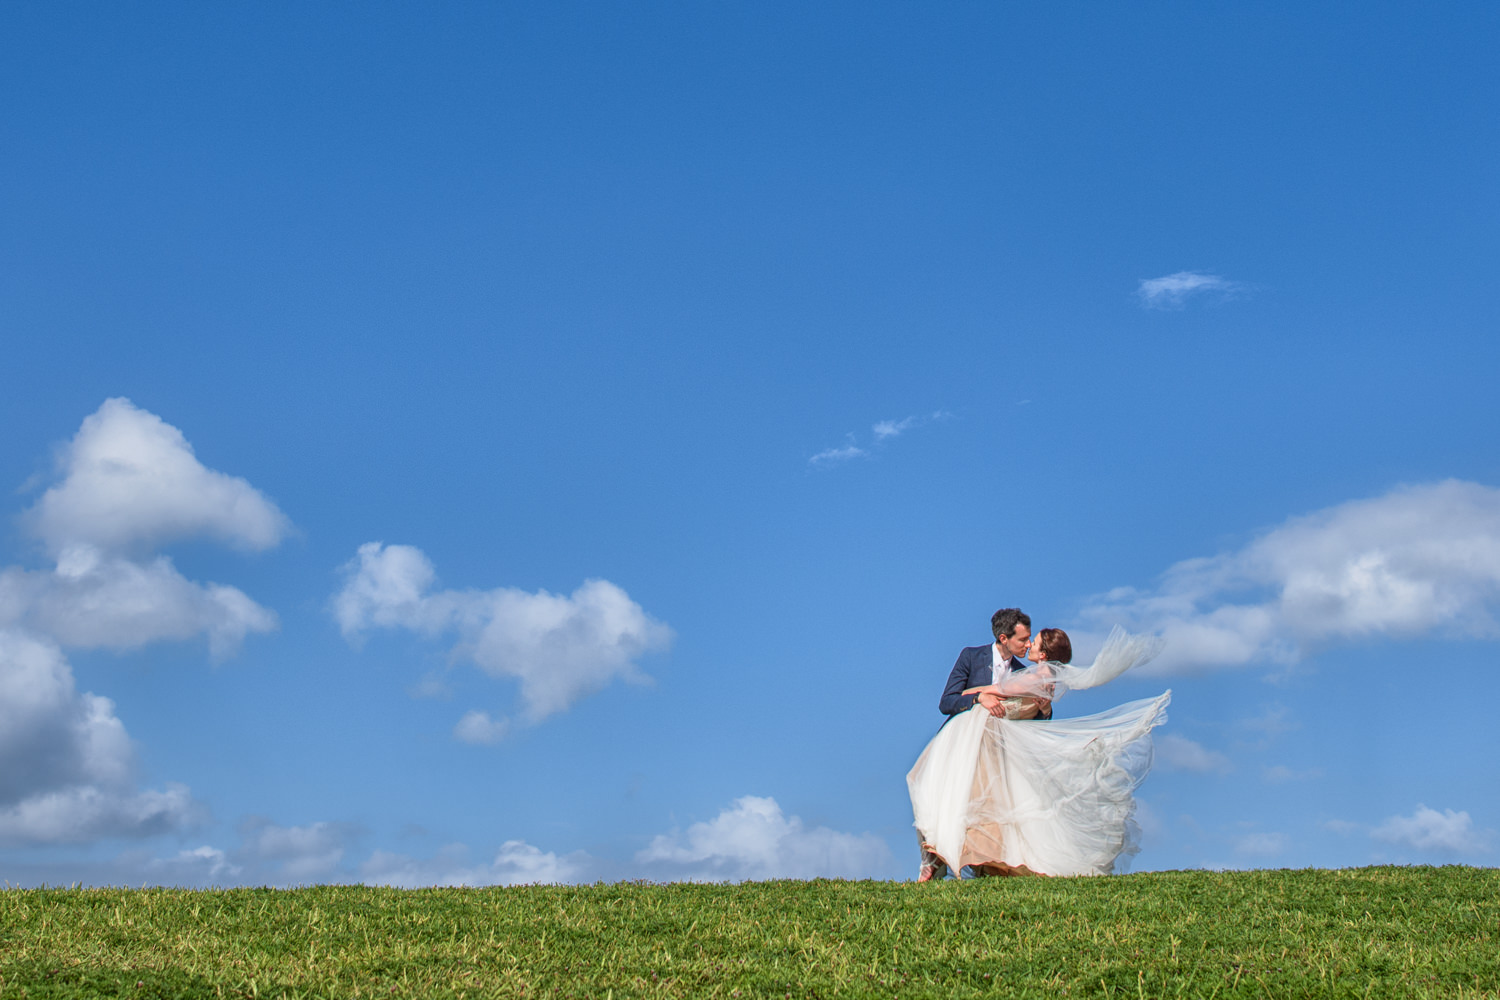 bride-and-groom-picture-sky--clouds-st-augustine